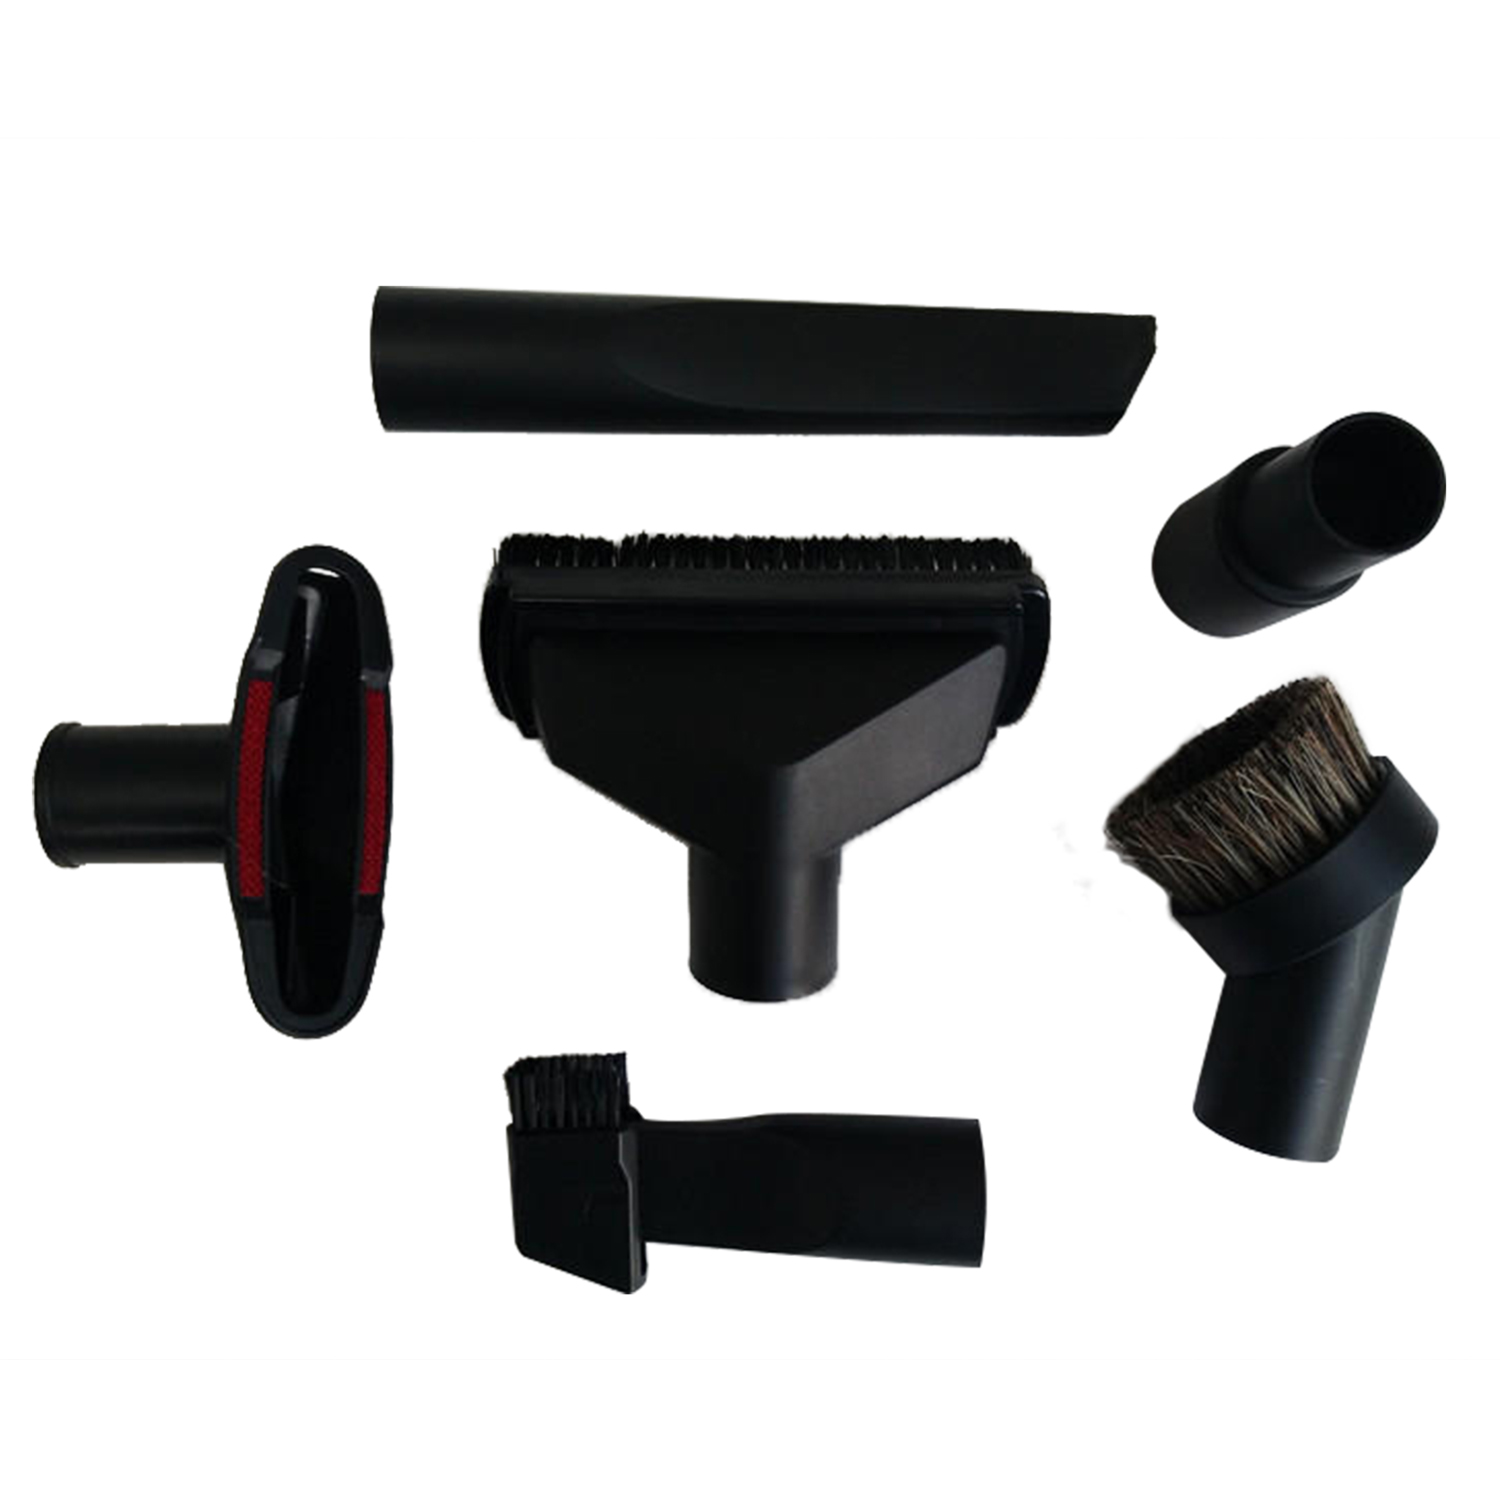 1 Set Vacuum Cleaner Accessories Multifunction Universal 30mm Parts Accessory Small Nozzle Brush Floor Tools Filter Bag Cleaning